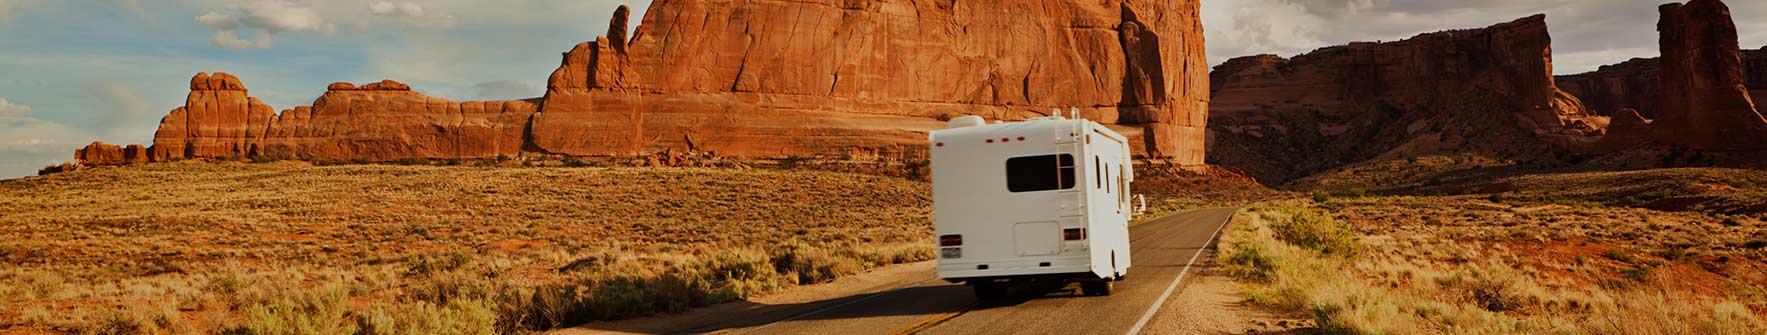 A brand new RV driving down the road